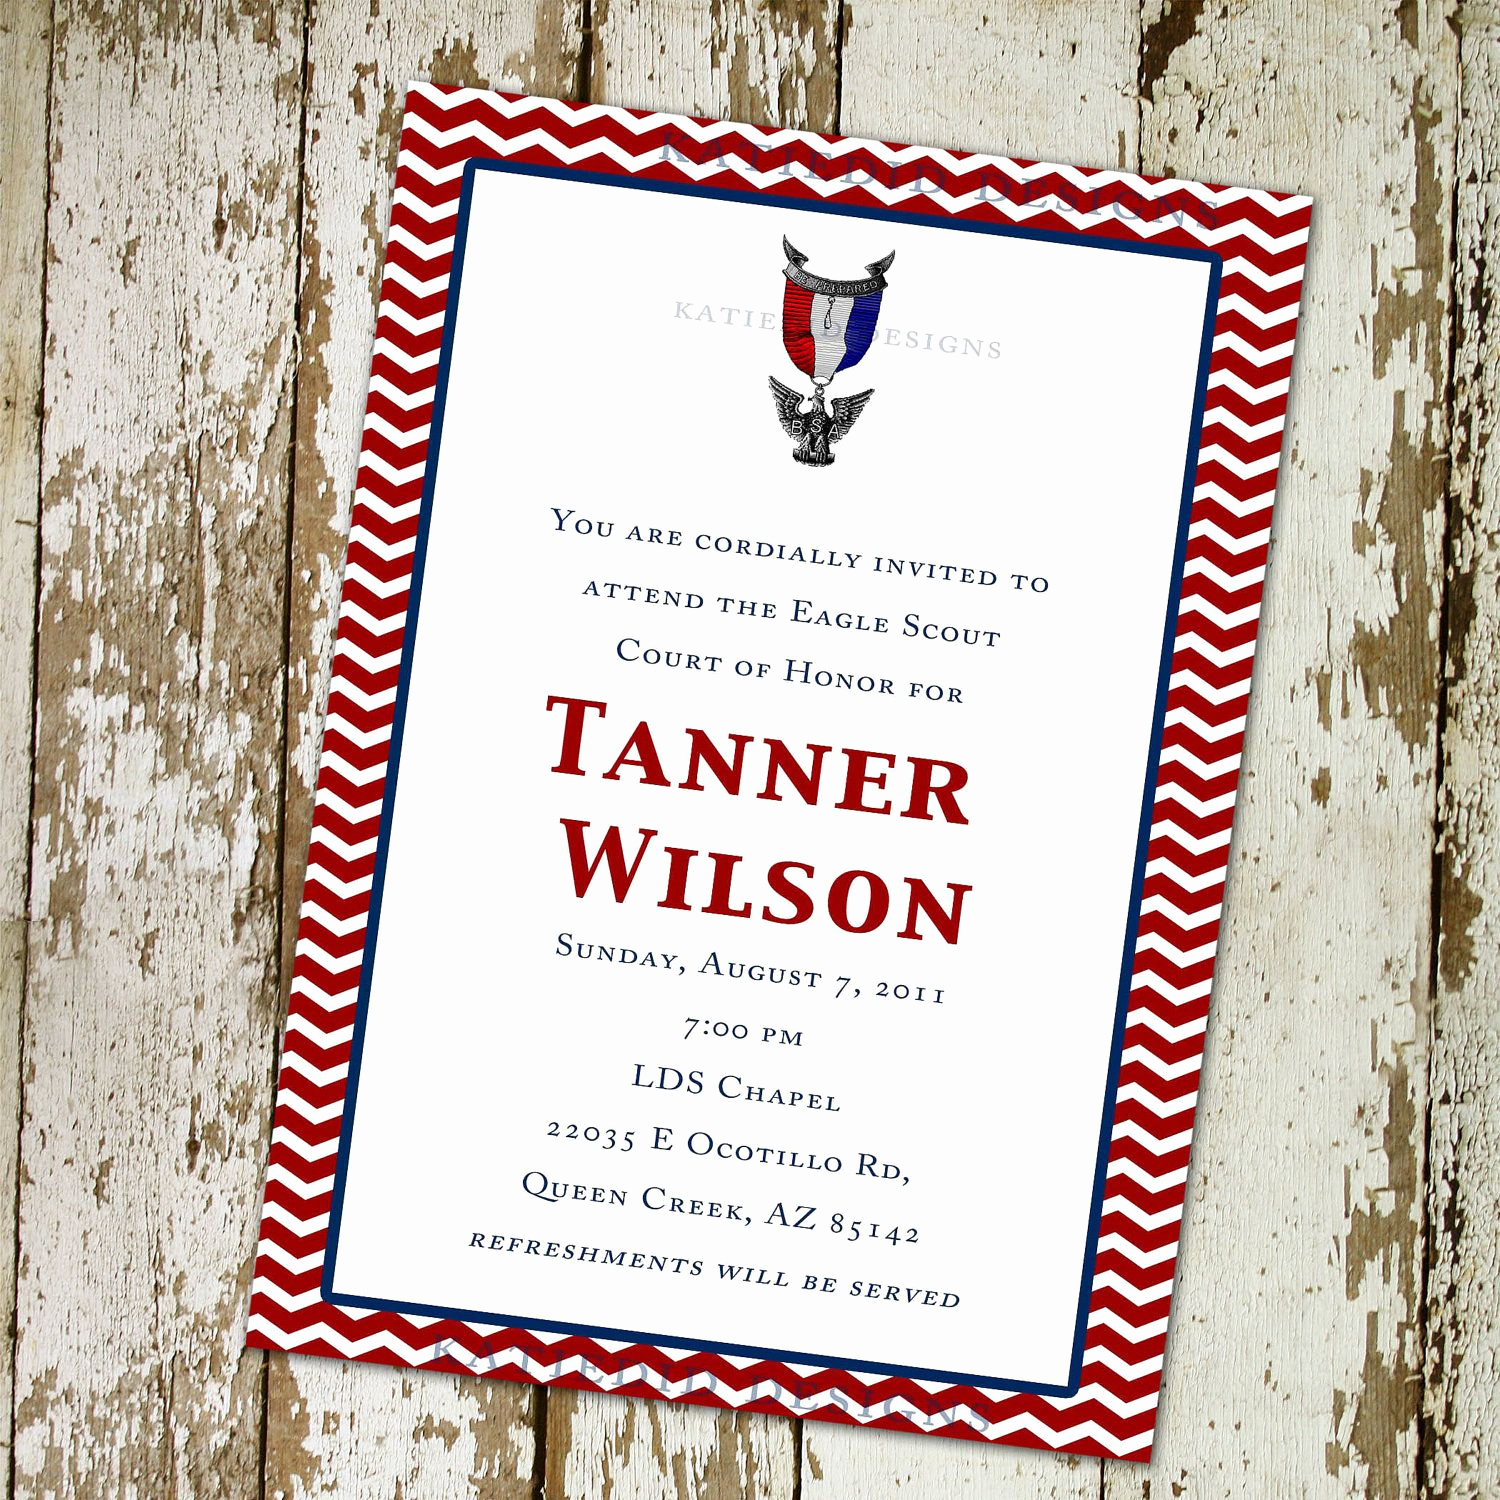 Eagle Scout Invitation Wording Fresh Eagle Scout Court Of Honor Graduation Invitation Patriotic